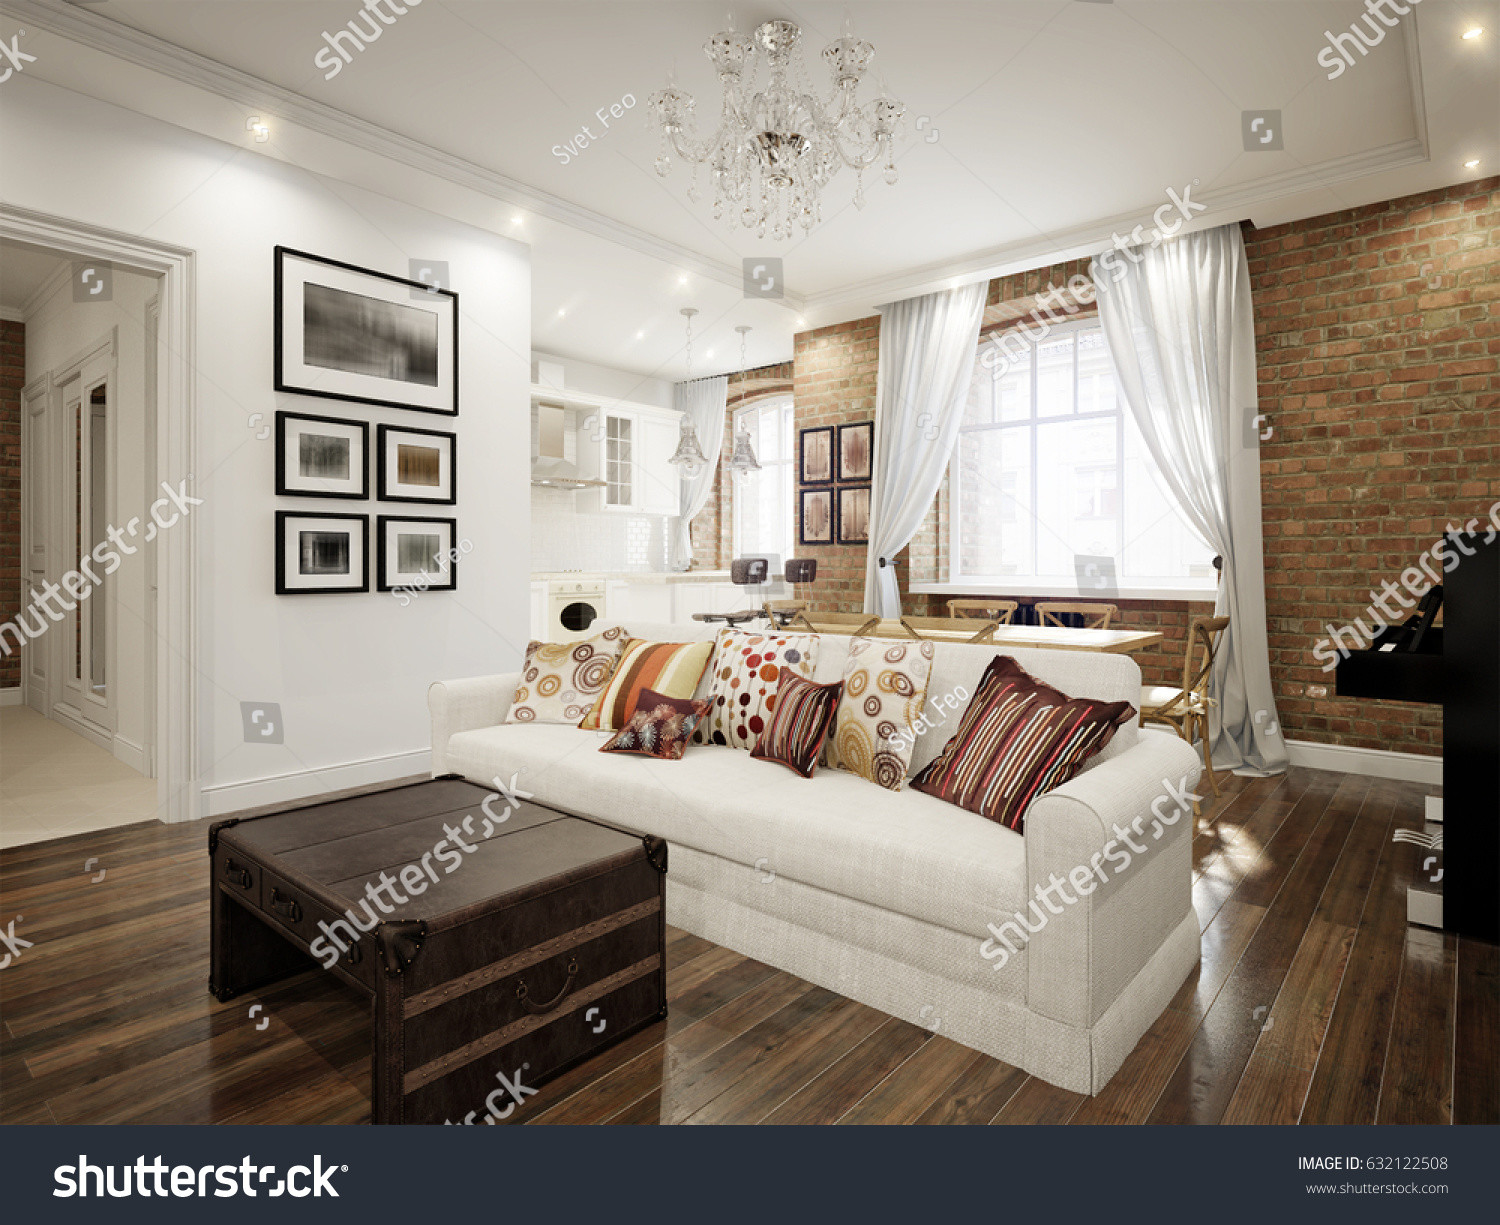 hardwood floors white walls of modern classic traditional white living room stock illustration in modern classic traditional white living room in old vintage european apartment with brick walls 3d